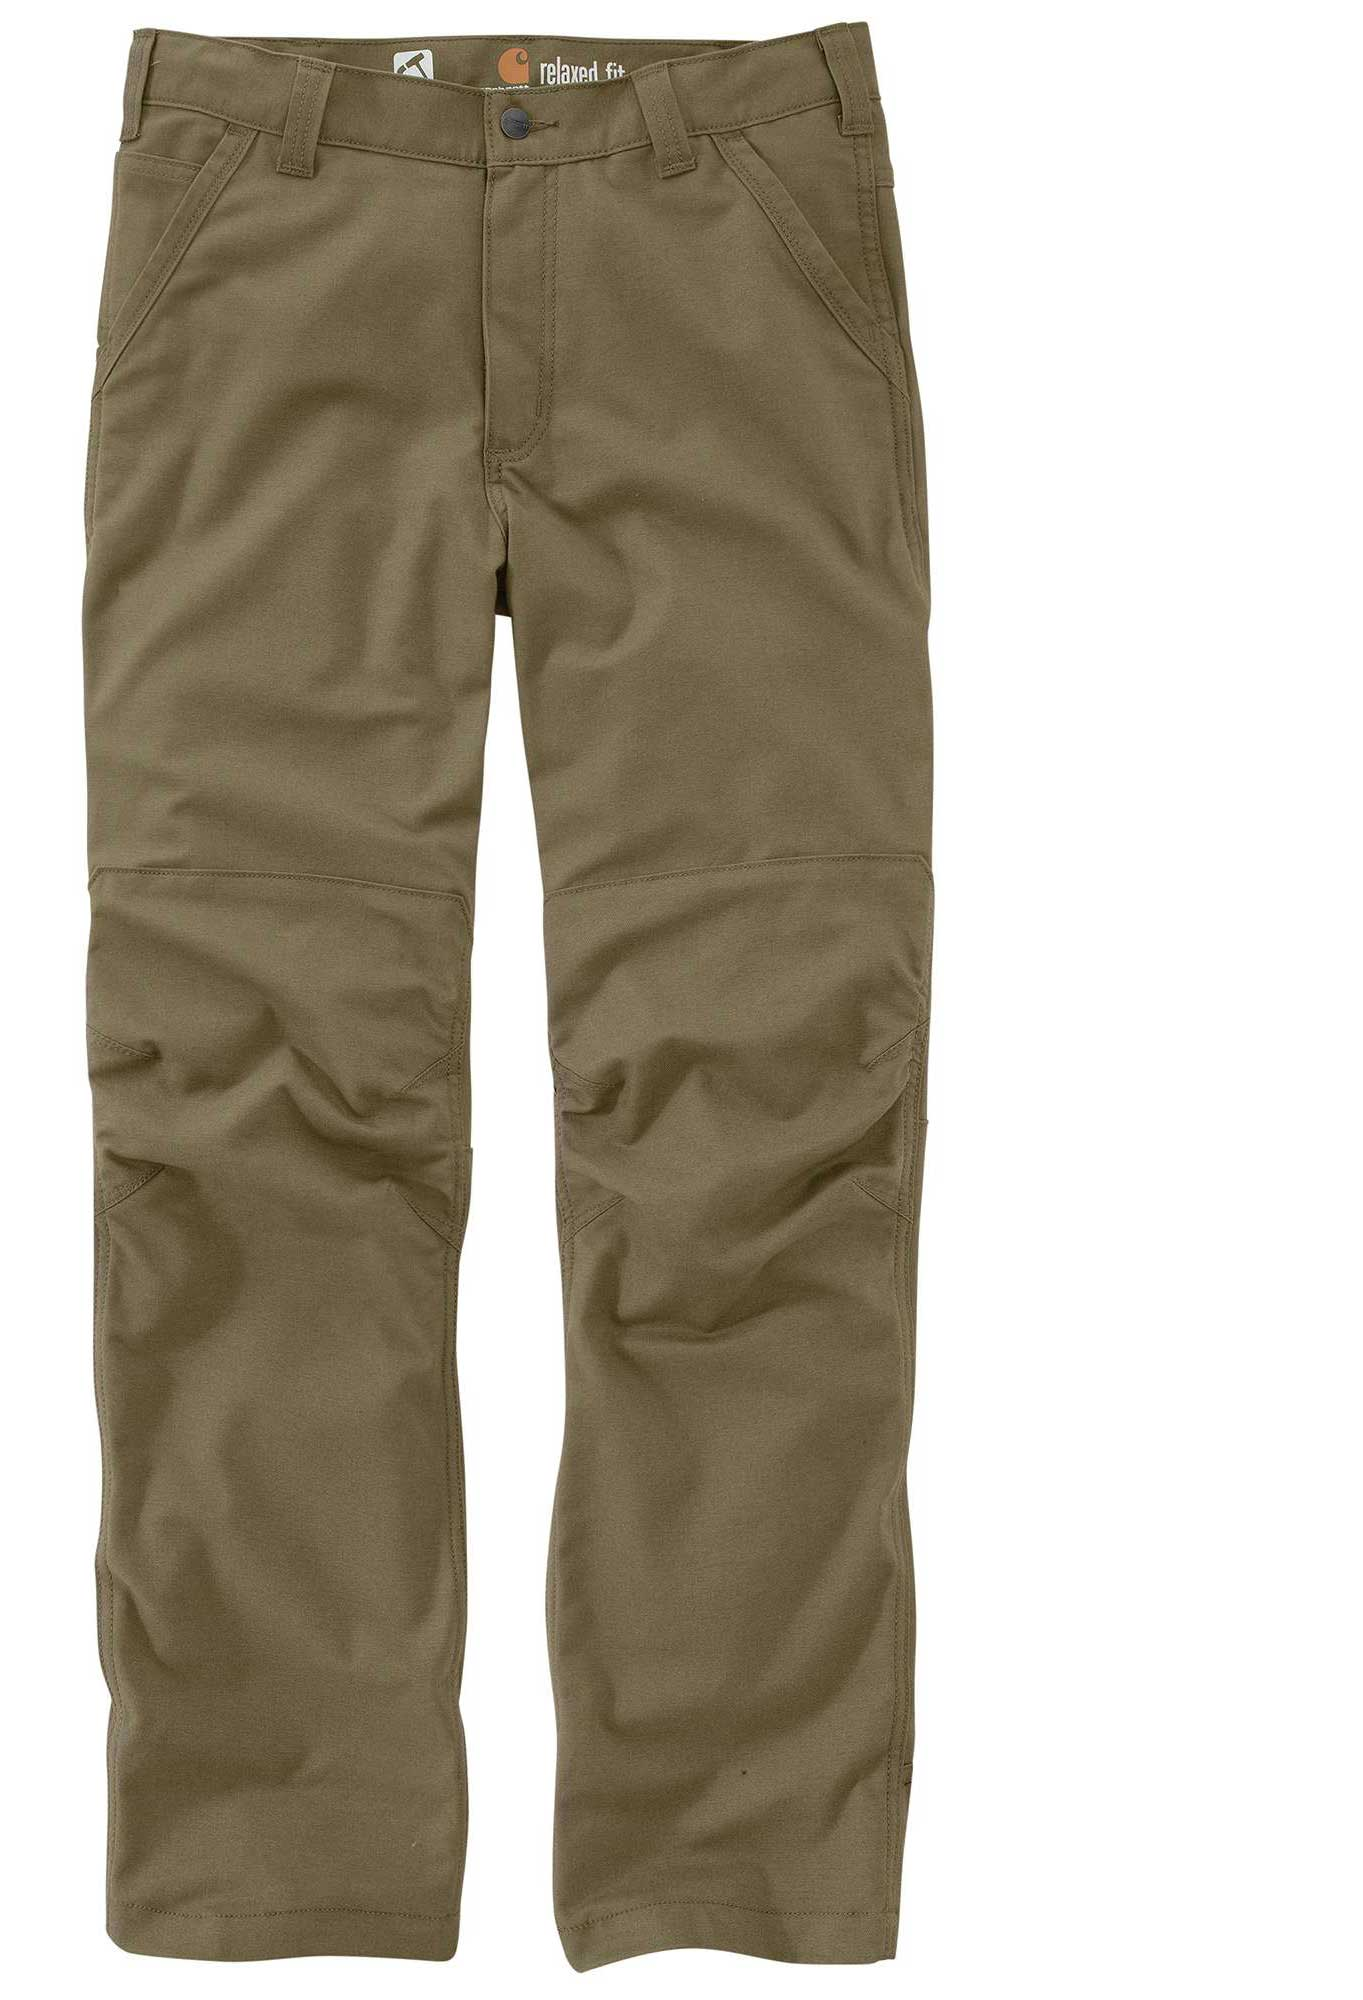 d34a0b73 Six New Carhartt Pants Workers Will Love - Dungarees Work Wear Resources